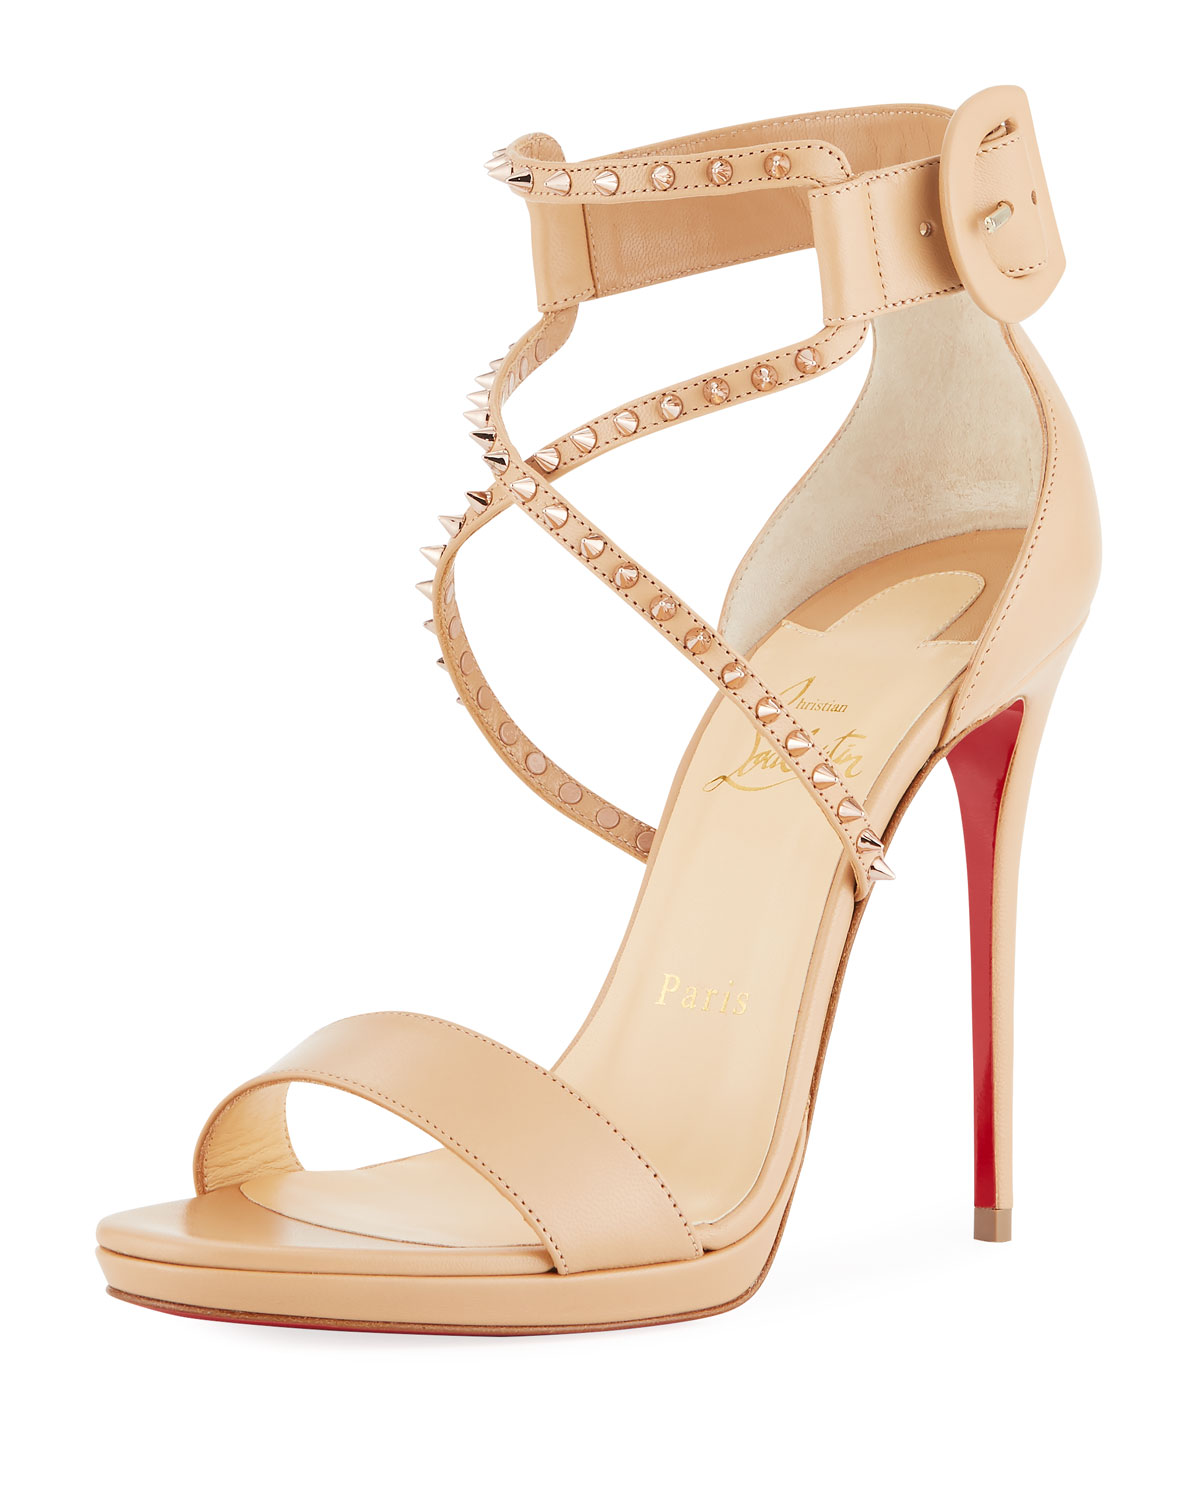 detailed look 9b2ed 3912e Choca Lux High Red Sole Sandal